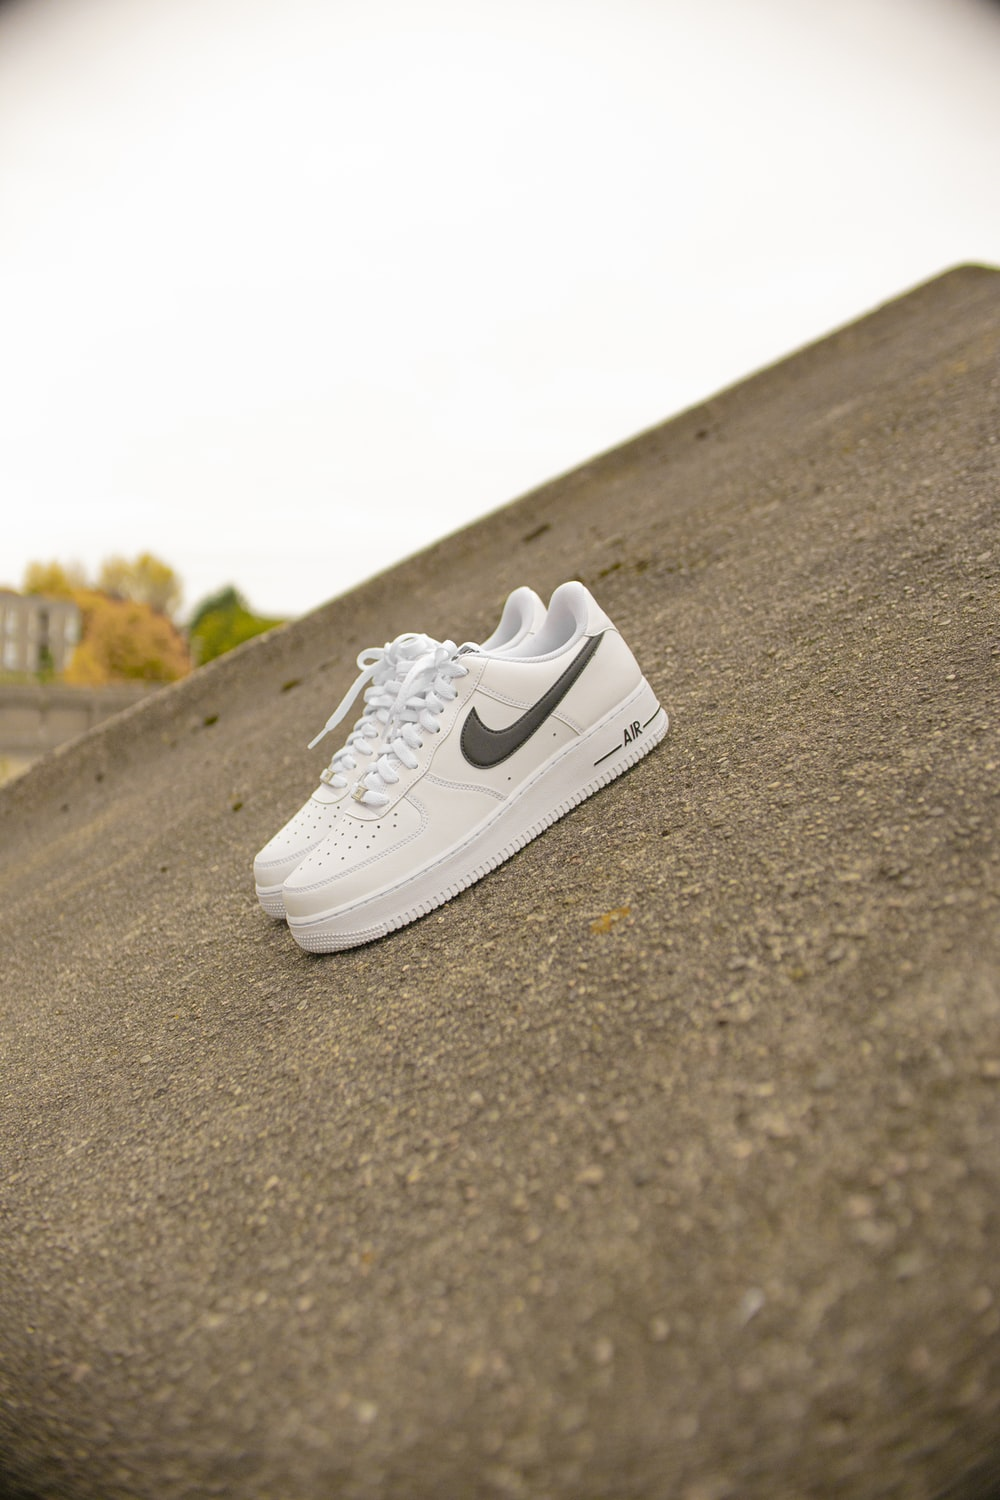 white nike air force 1 low on gray asphalt road during daytime